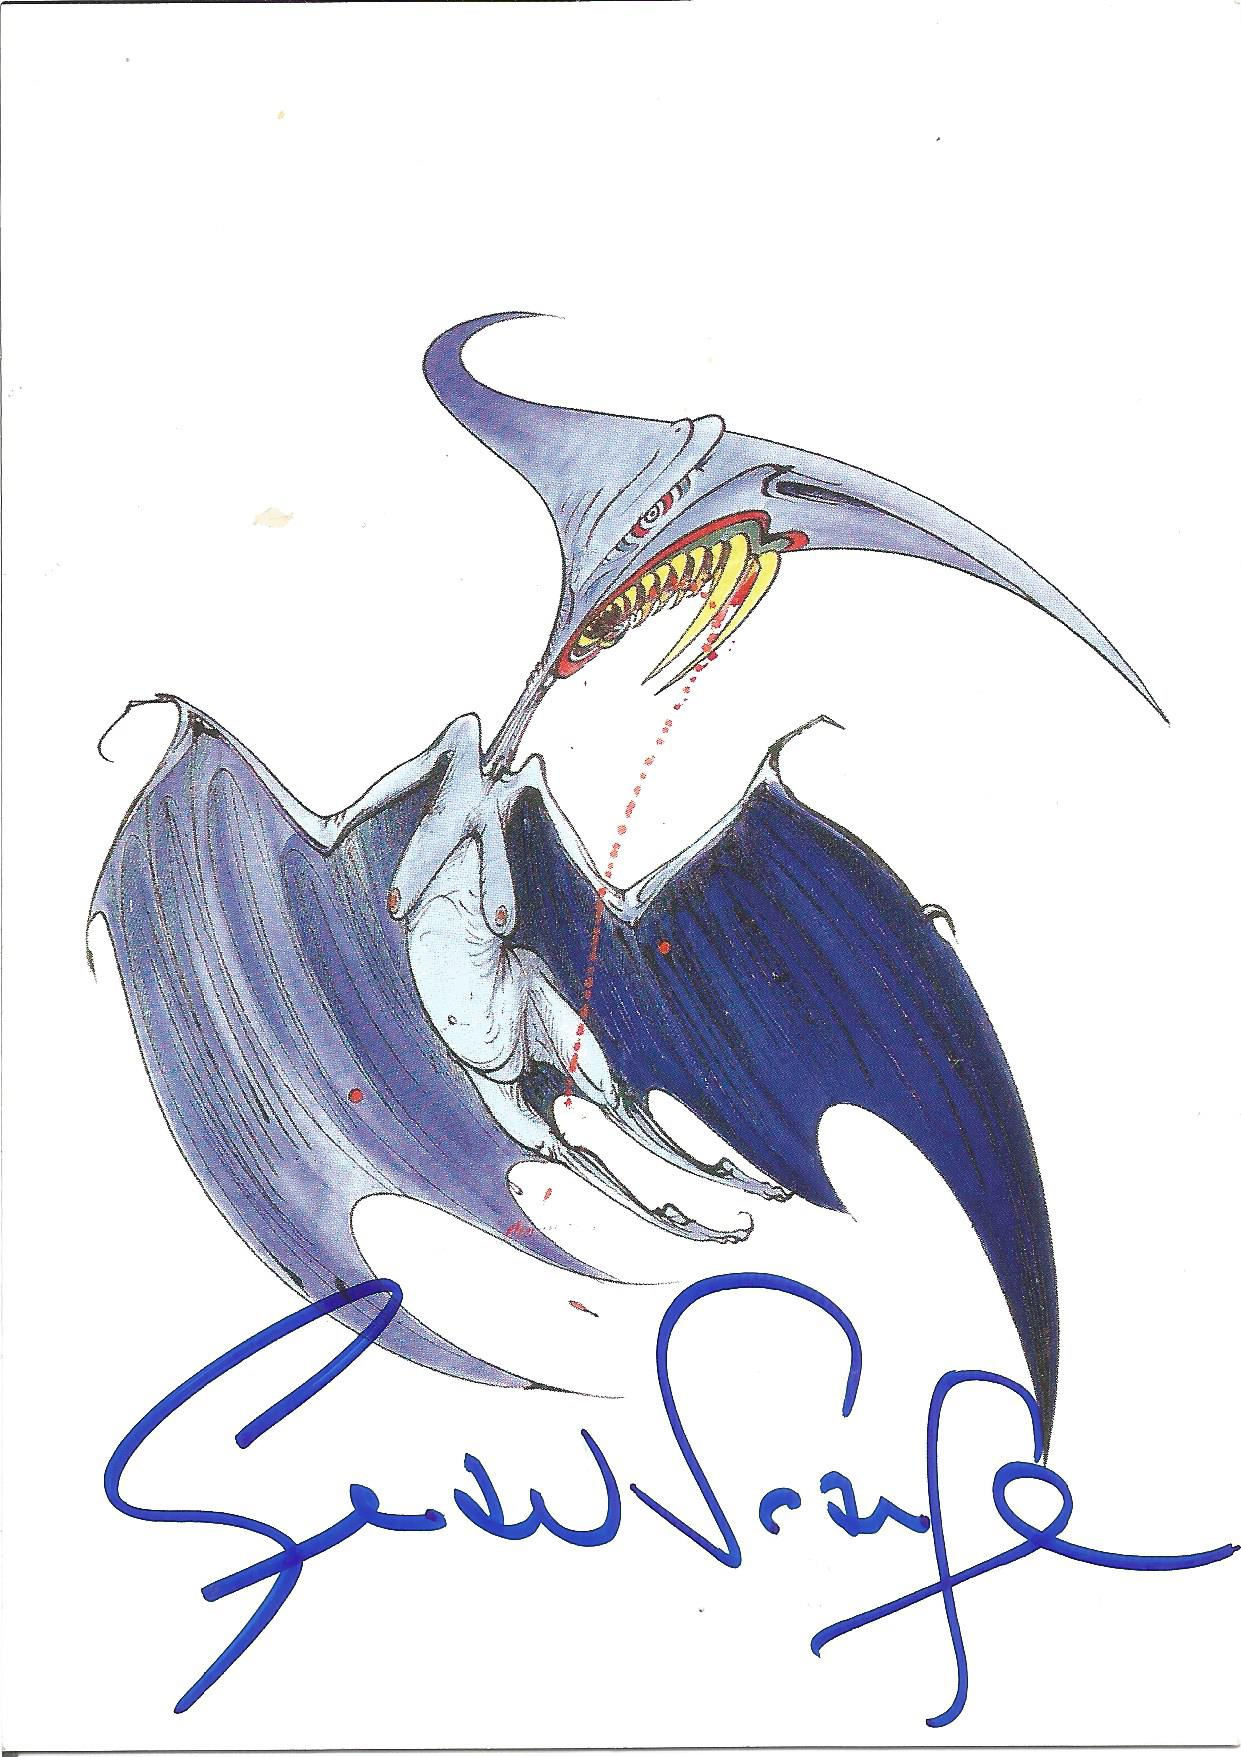 Gerald Scarfe signed postcard of his illustration Margaret Thatcher: Torydactyle. Scarfe is an